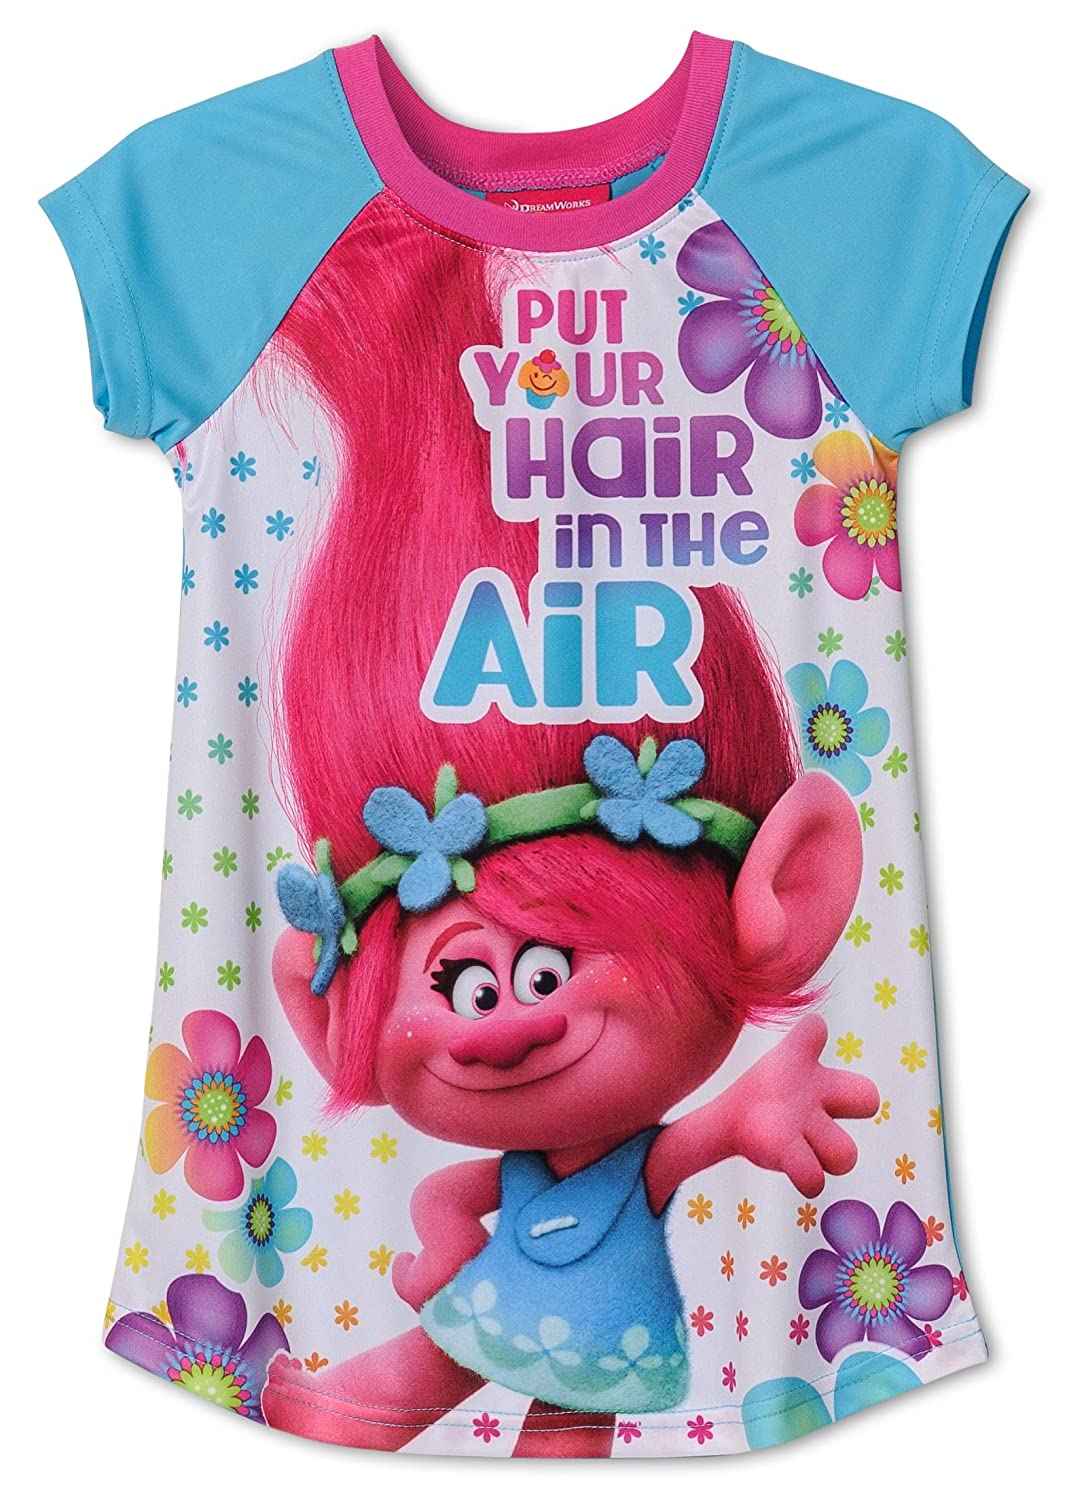 Trolls DreamWorks Movie Put Your Hair Up Nightgown for Big Girls manufacturer TP012GDS